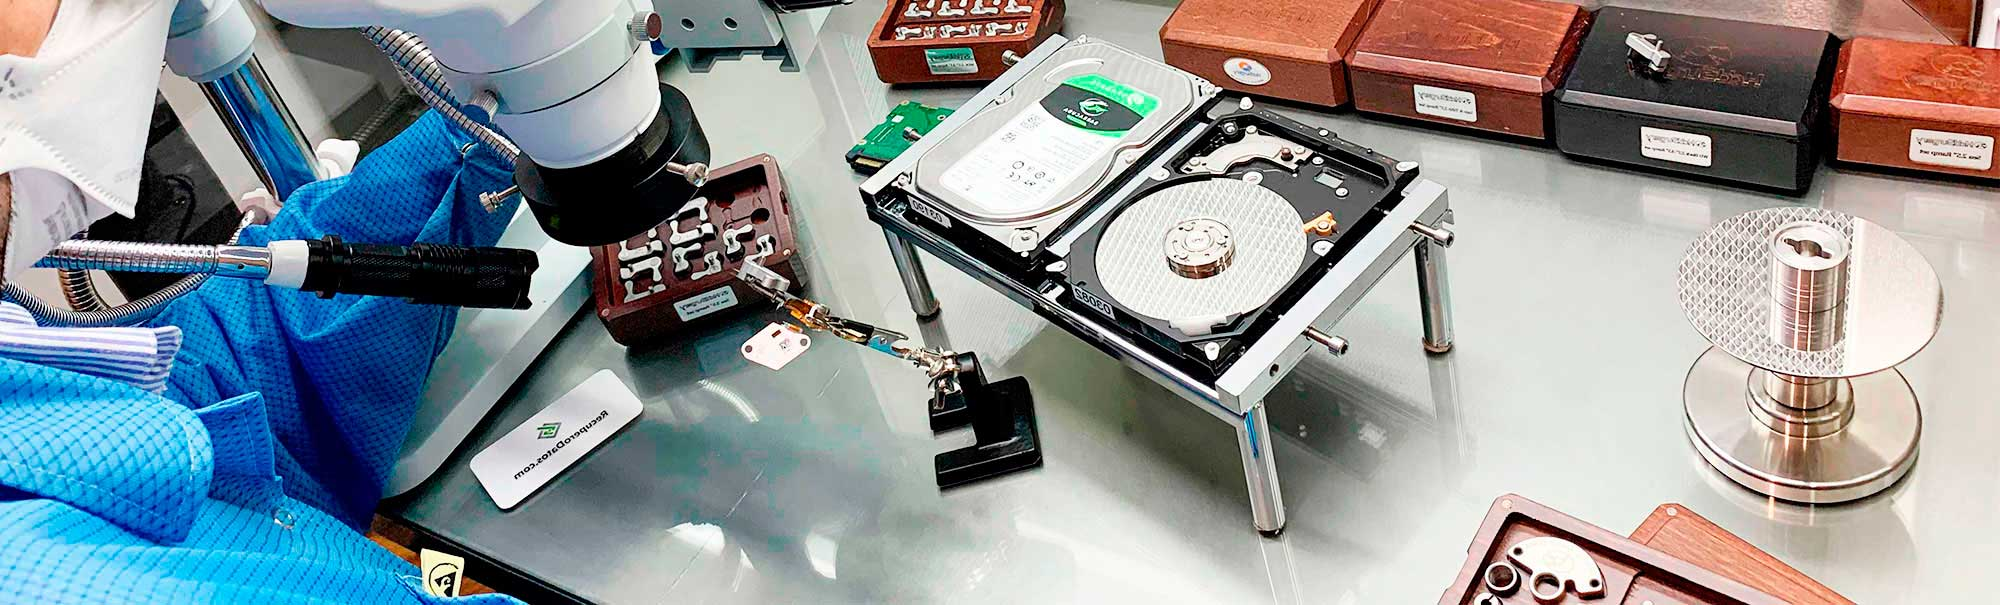 Data Recovery  HDD - Laboratory run by UTN Engineers in clean room